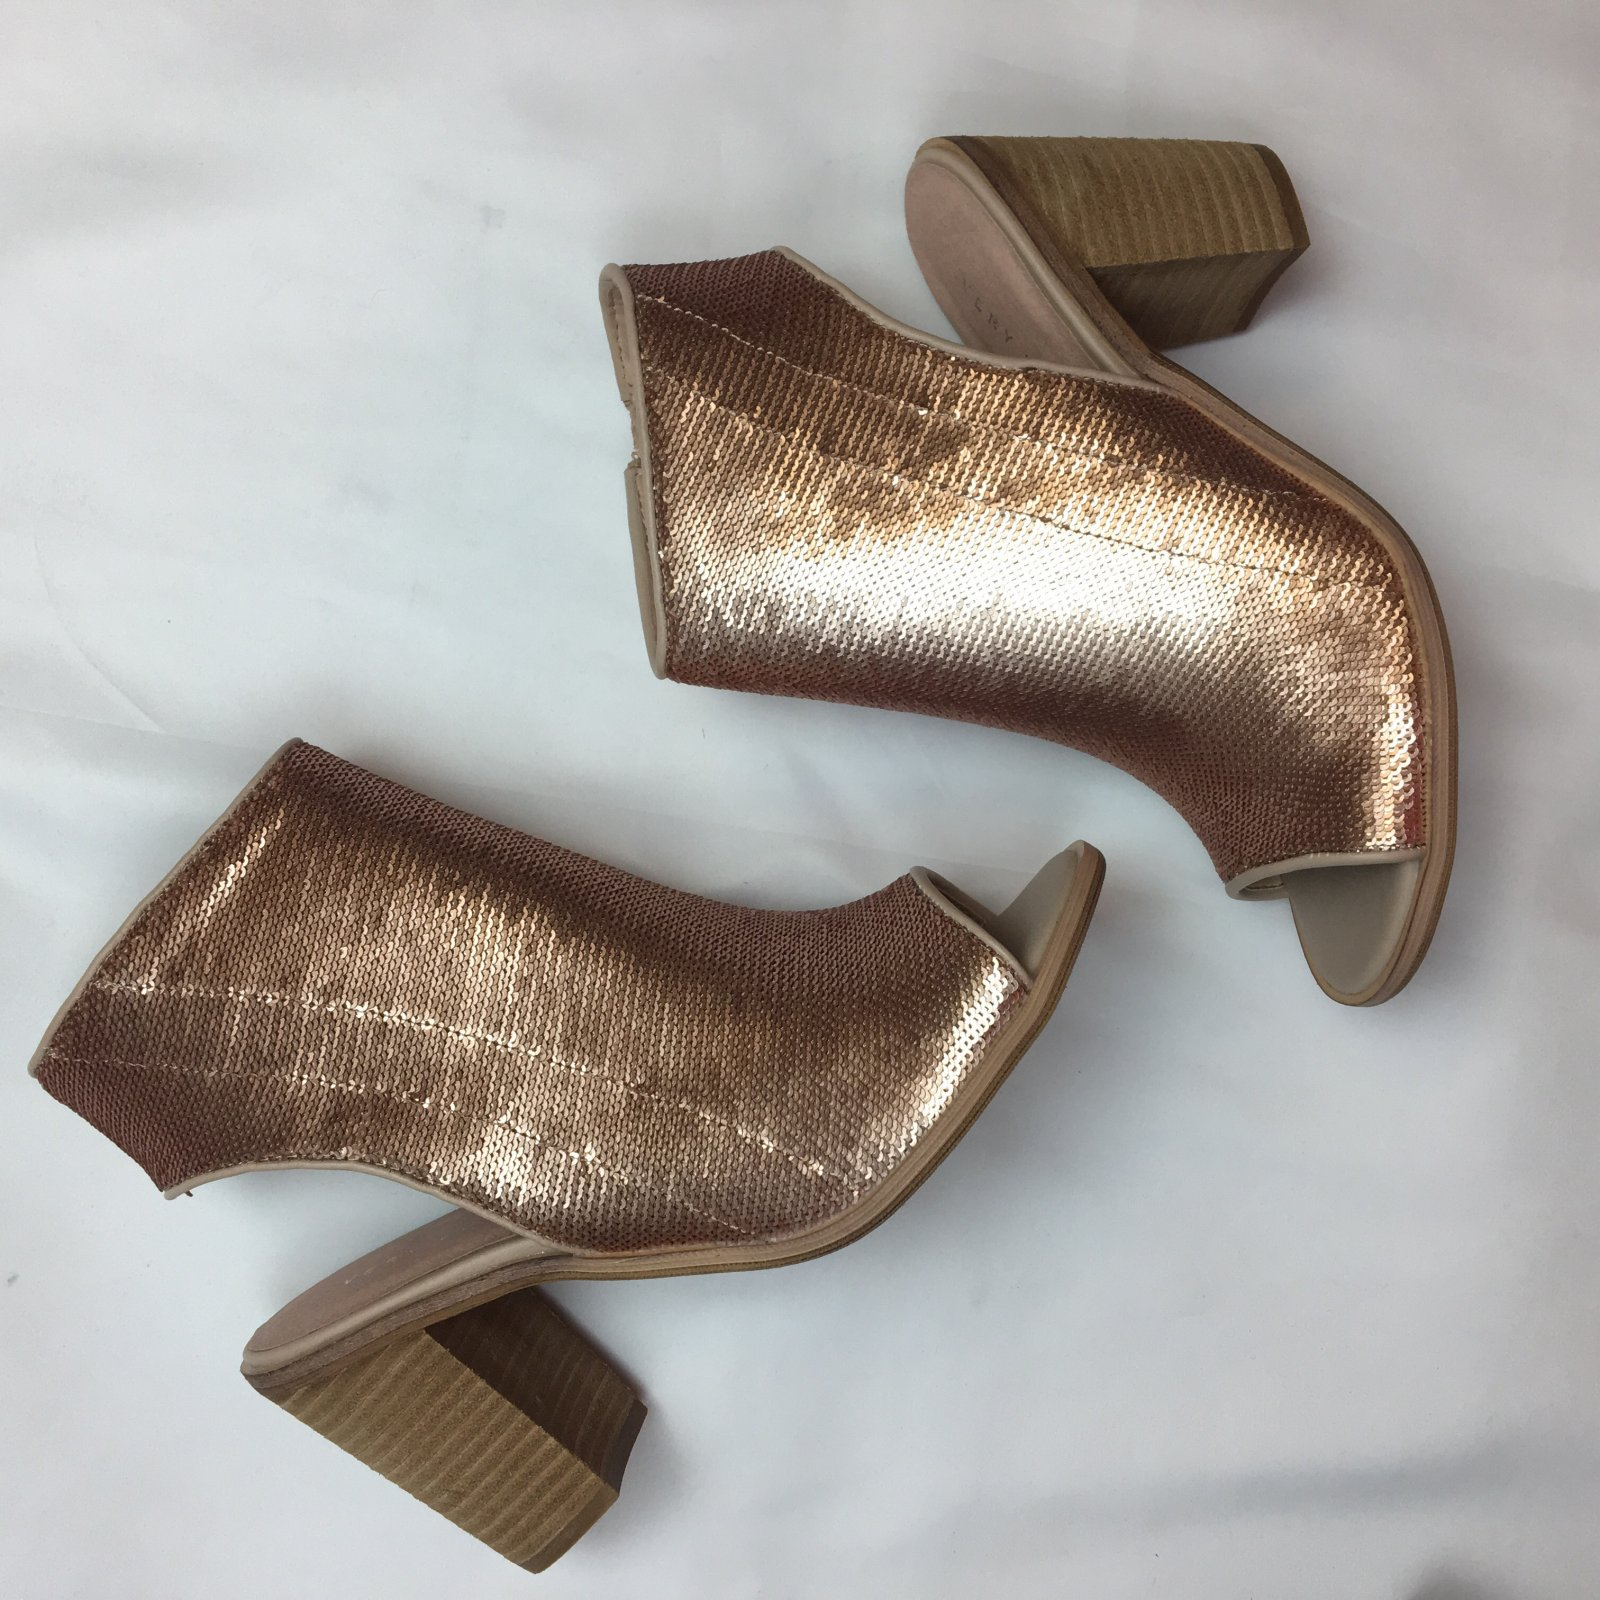 Mandi Sequin City Heel